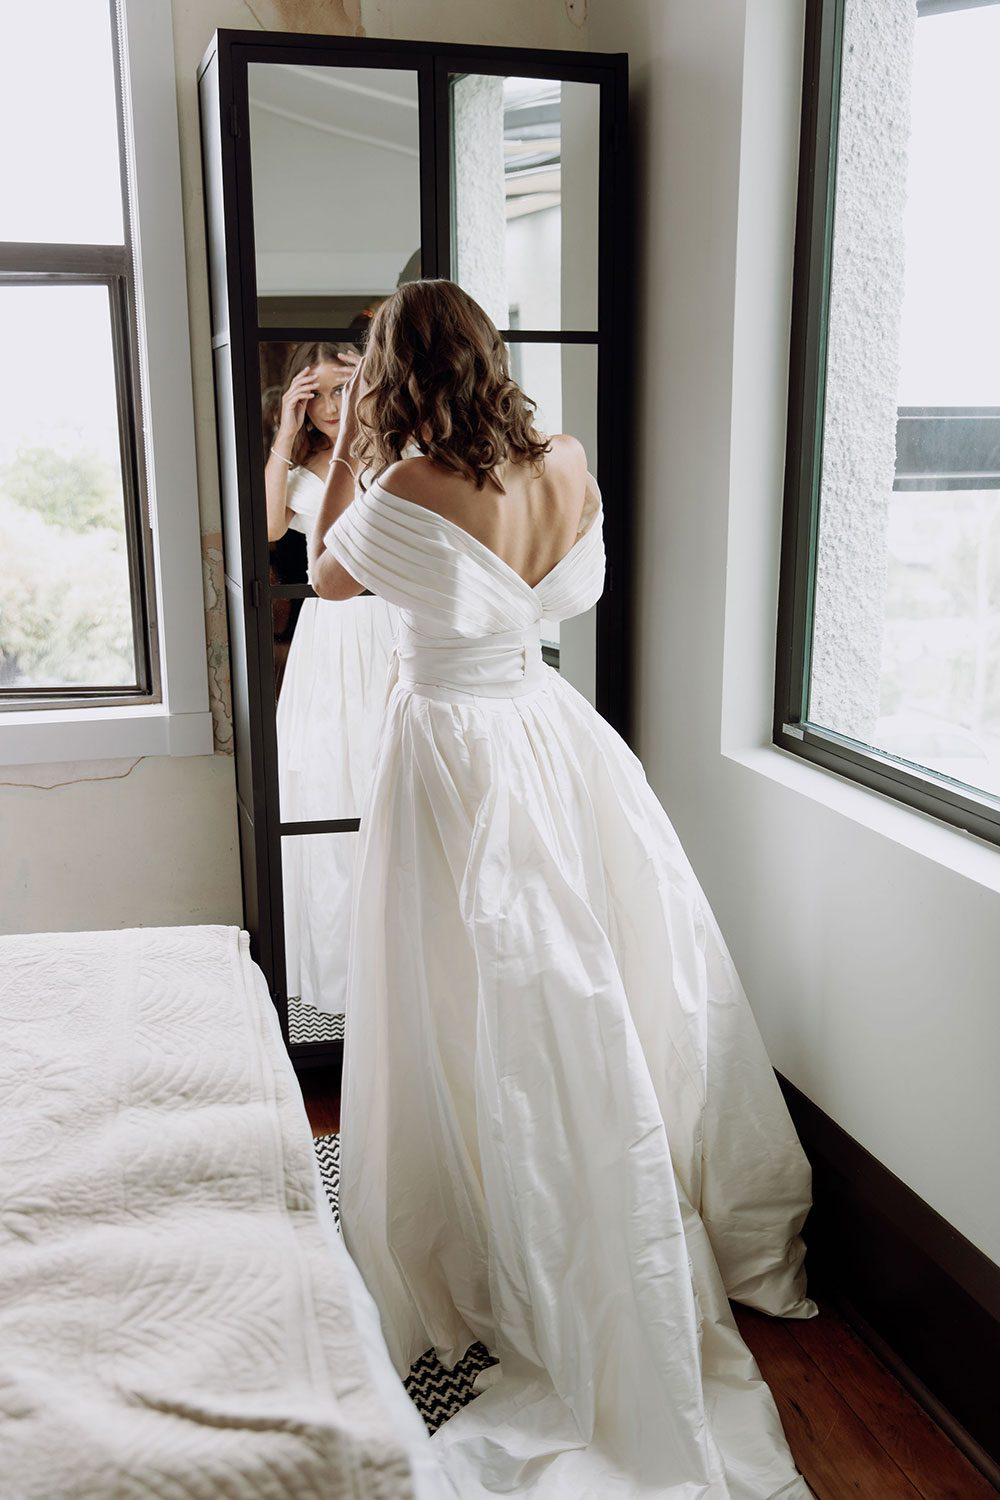 Bride wearing bespoke off shoulder bodice made with silk dupion and long train by NZ wedding dress maker Vinka Designs - at mirror